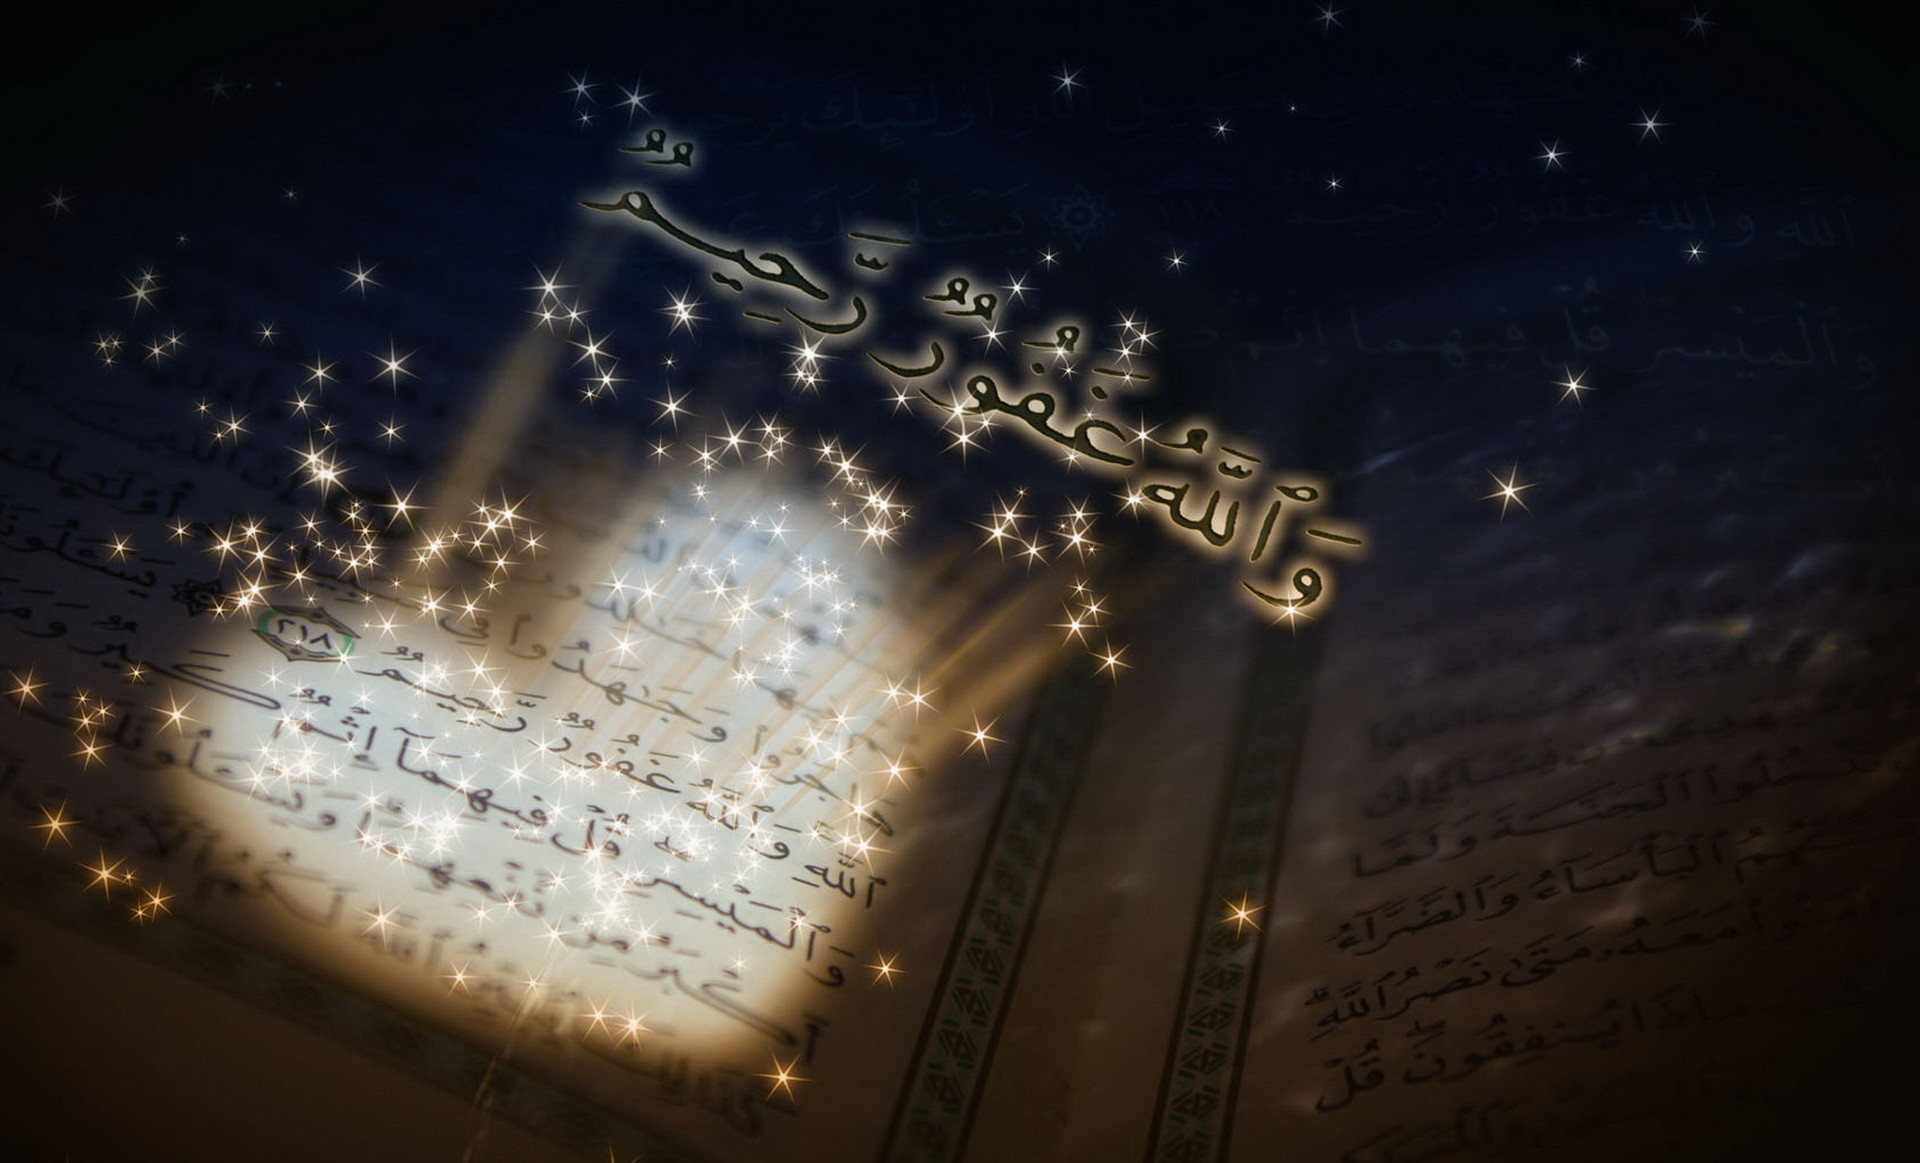 1920x1163  Wallpaper Arabic Islam Calligraphy Quran Macro Holy